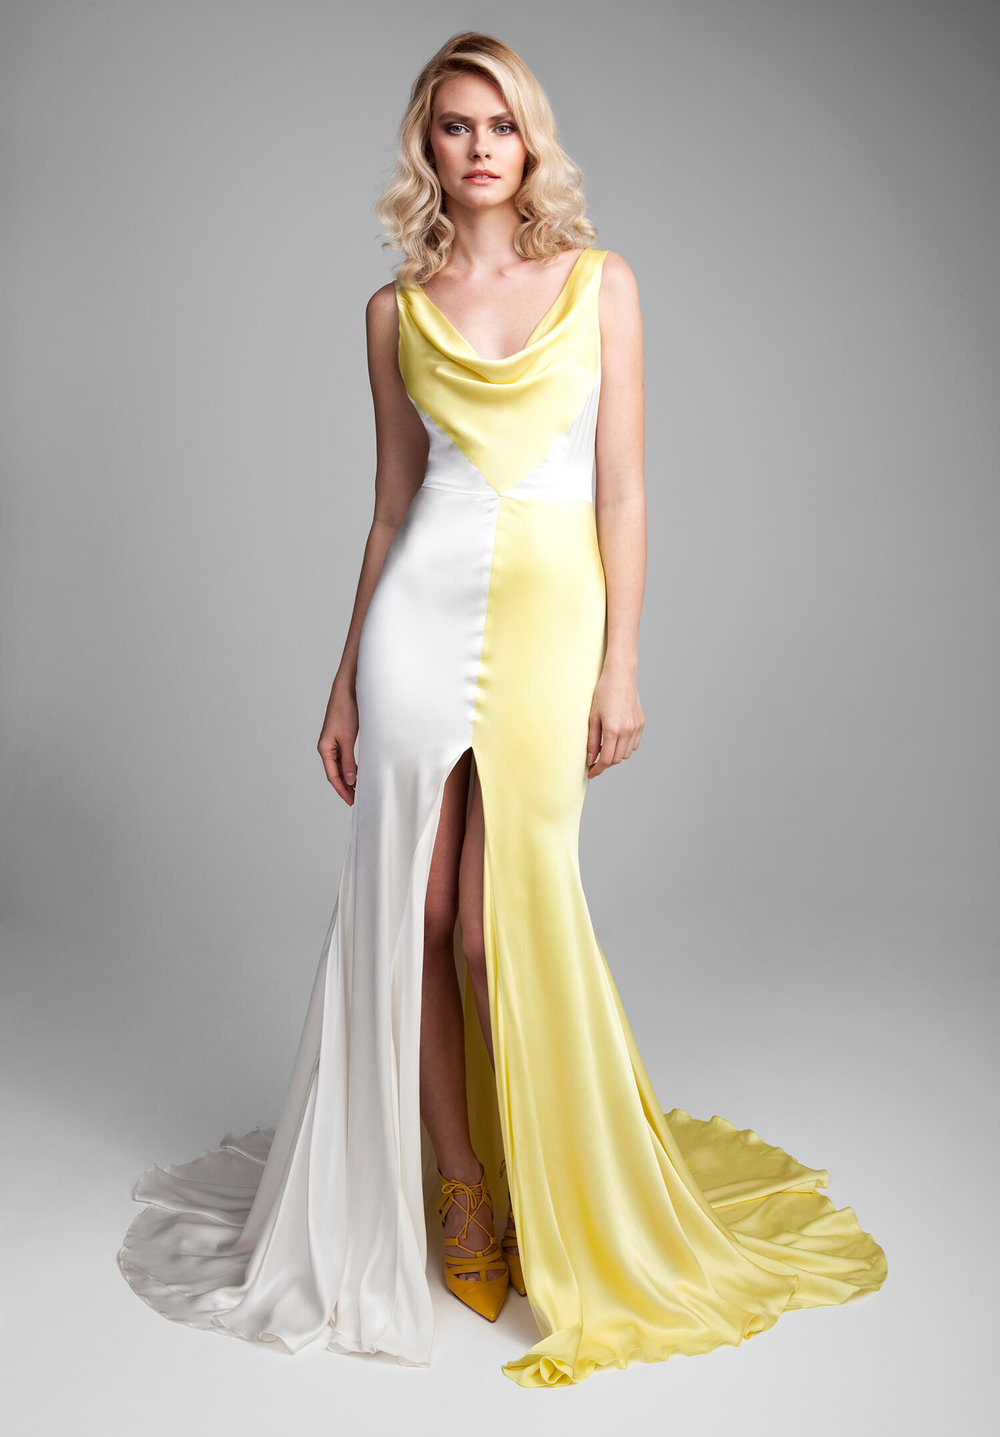 Get a slit in the skirt of the Esperia gown for a more sexy look